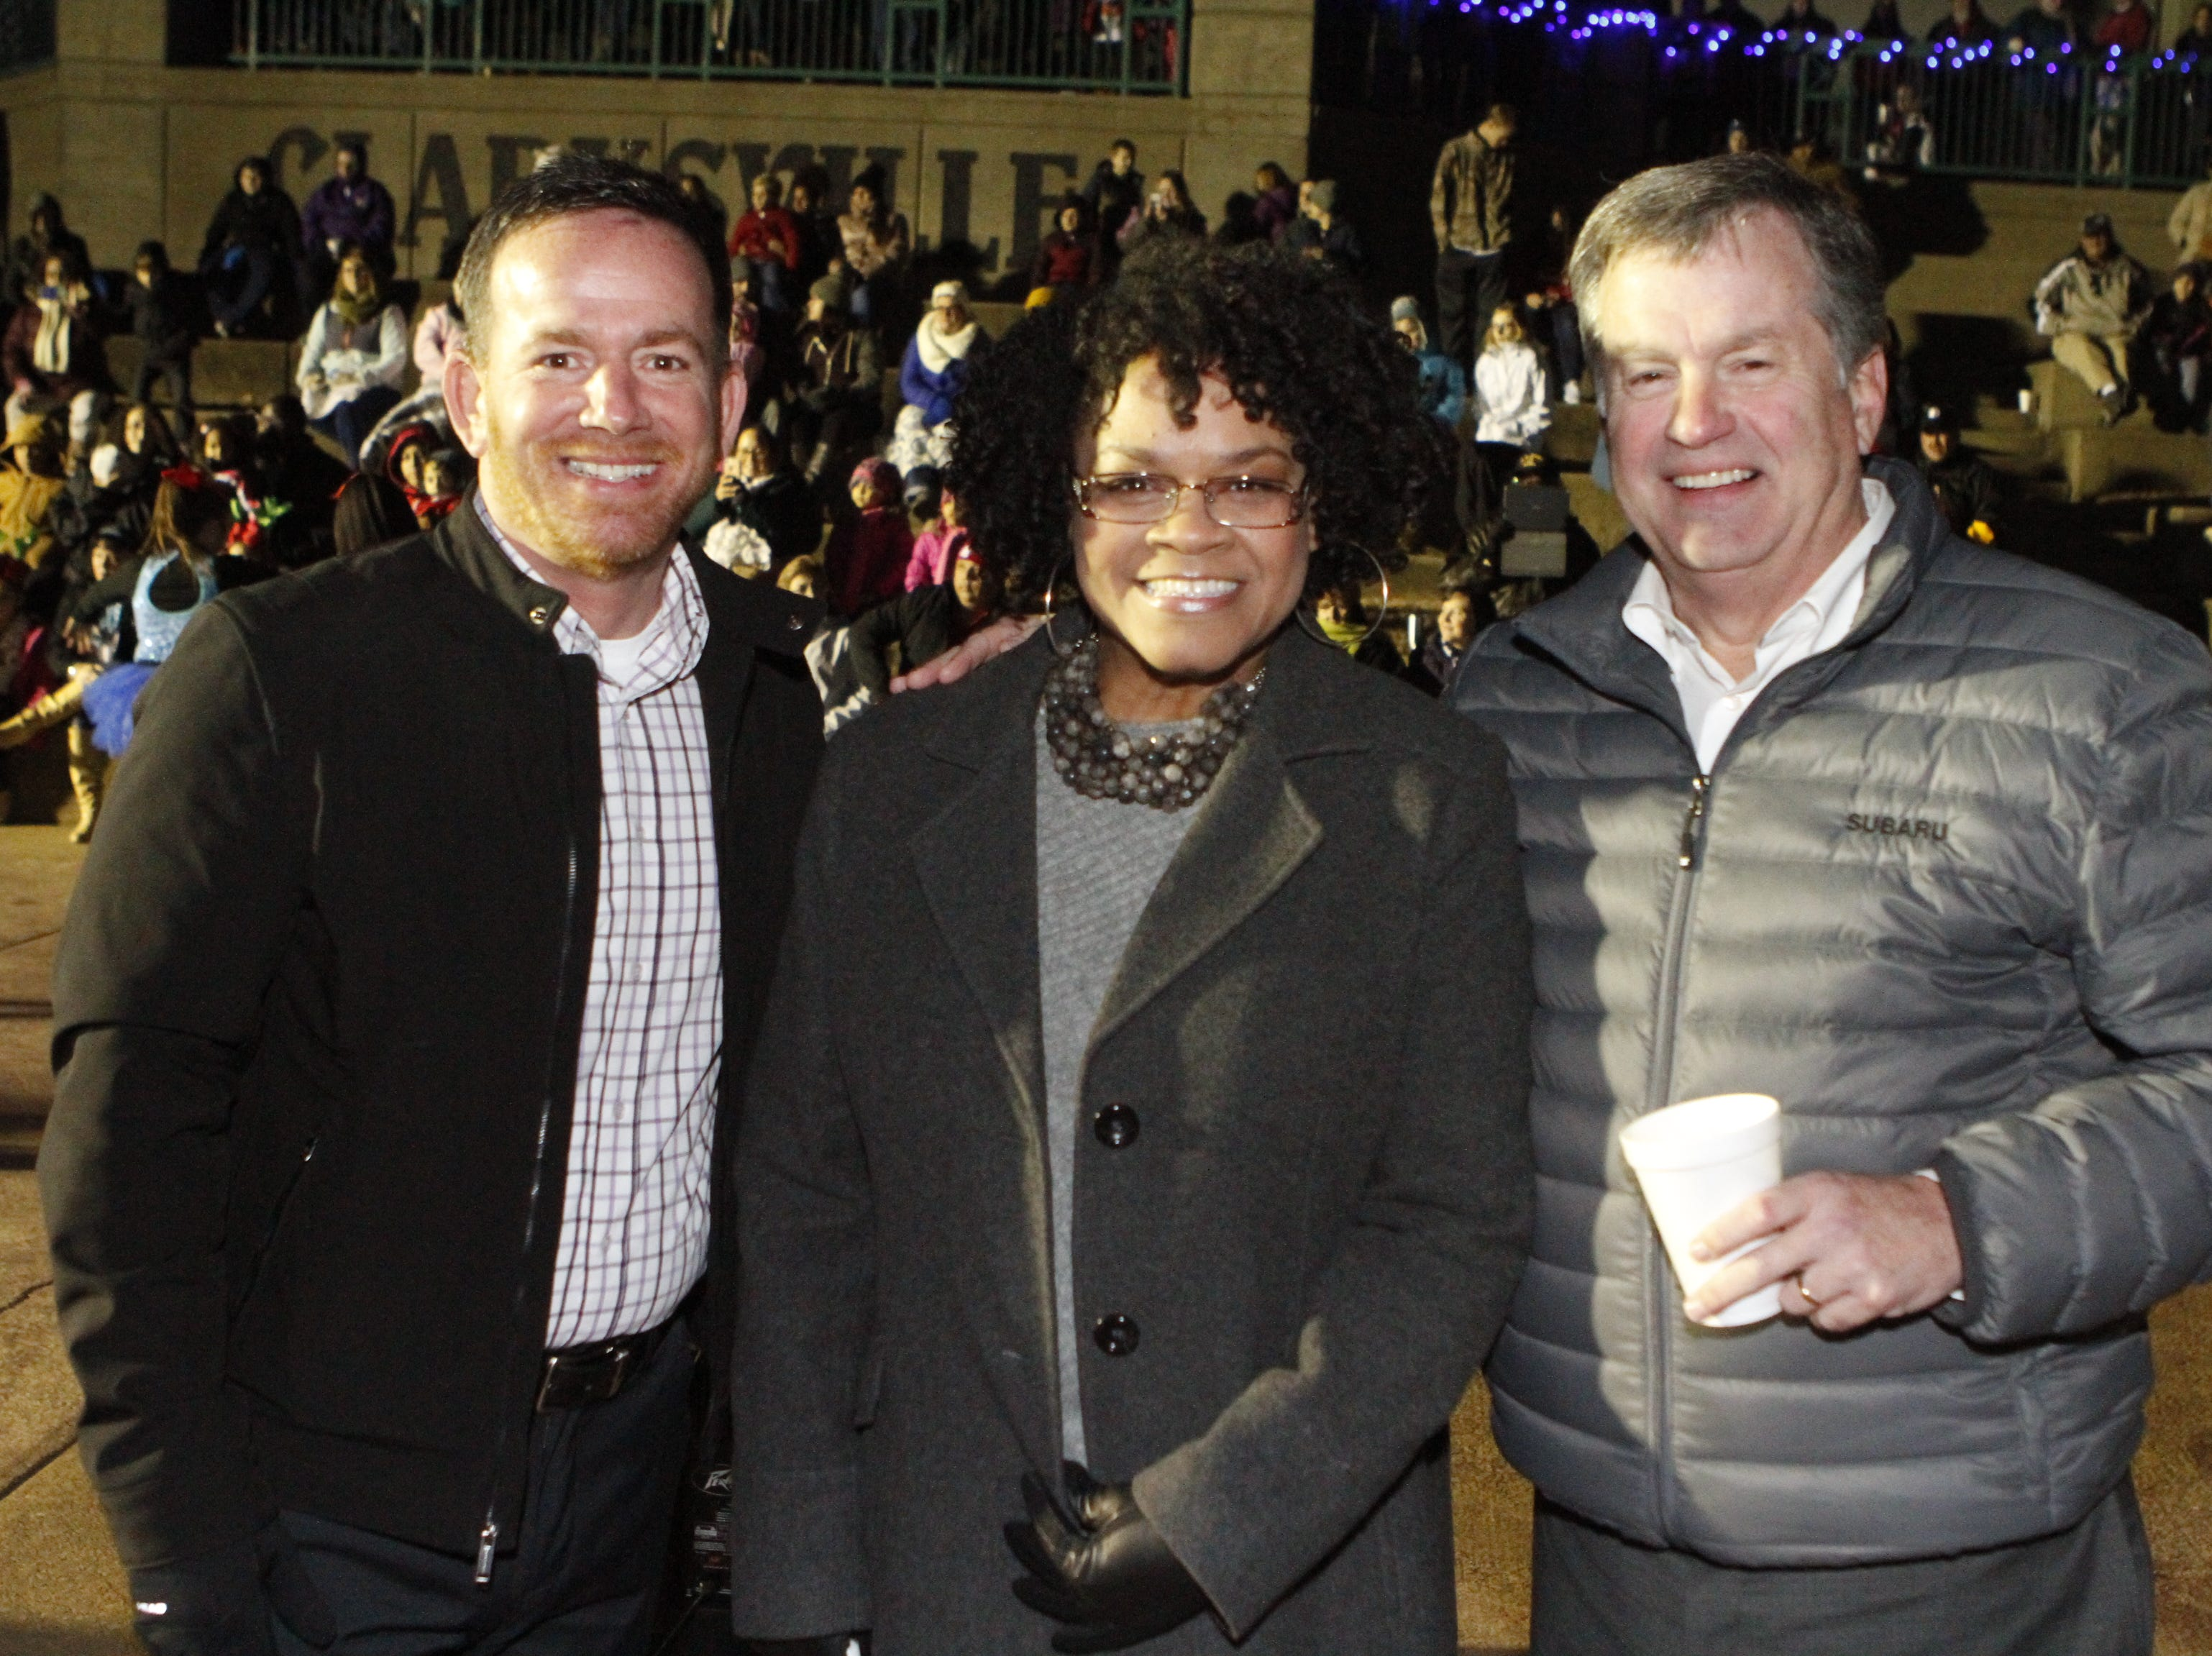 Anthony Daley, Clarksvile Mayor pro tem Valerie Guzman and Bill Powers at Christmas on the Cumberland Tuesday, Nov. 20, 2018.